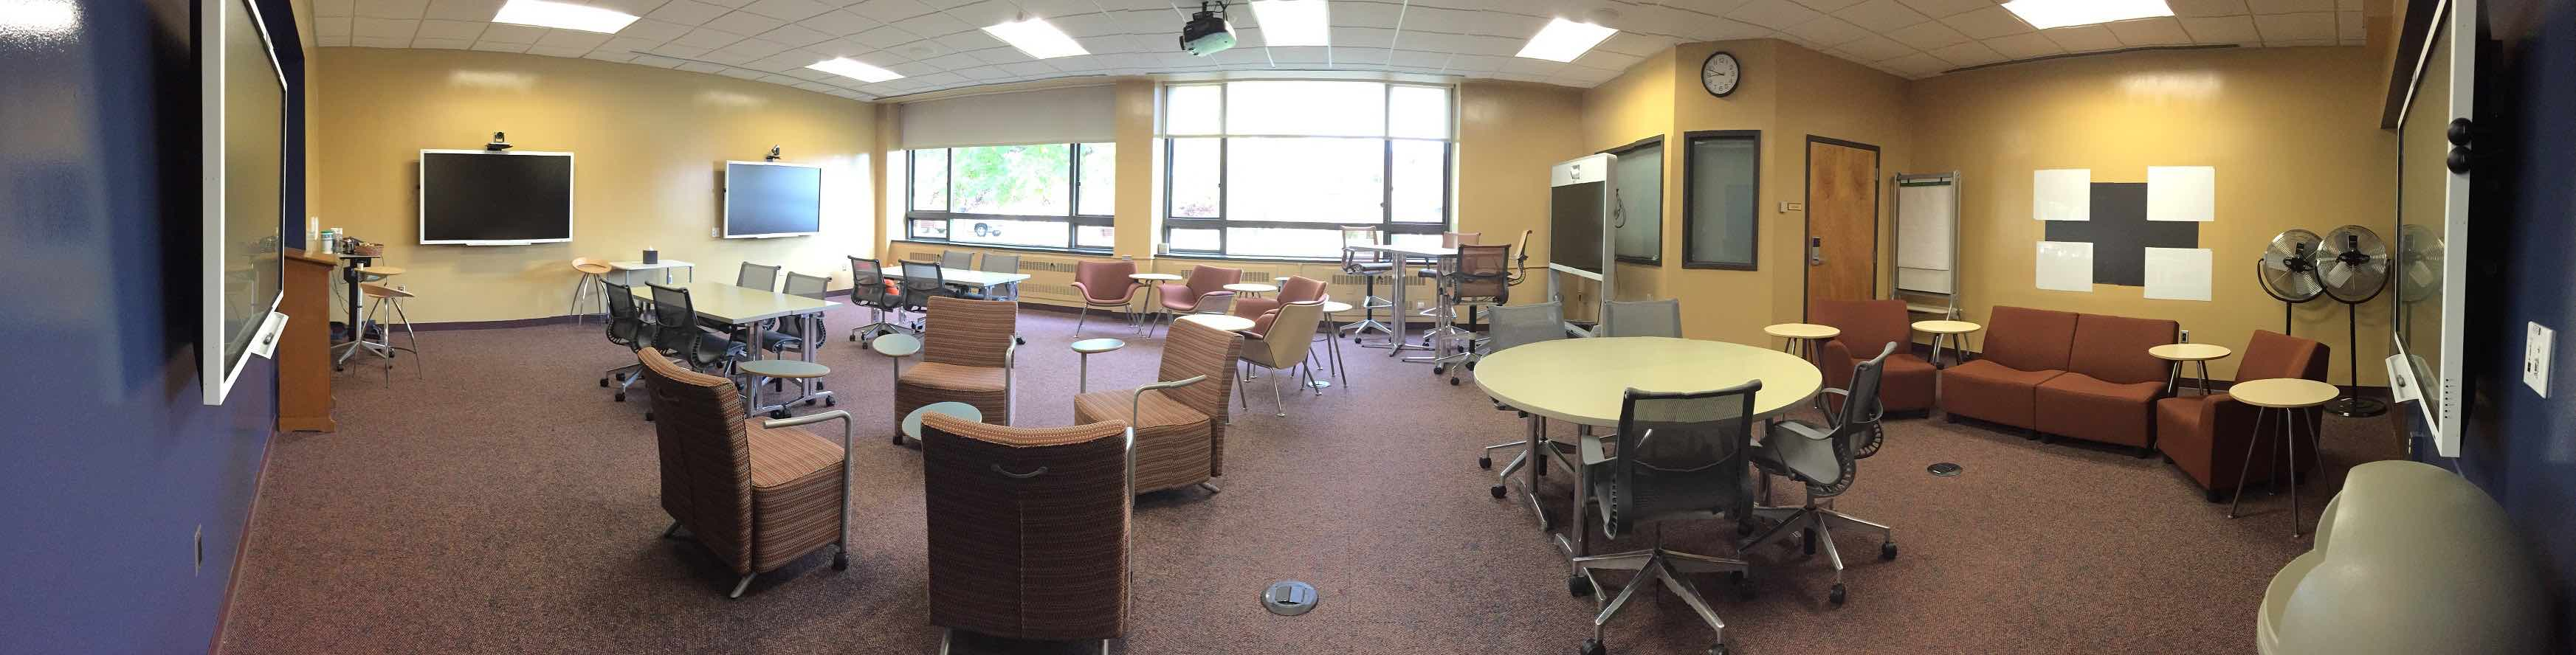 Learning Studio LN1324 Panoramic